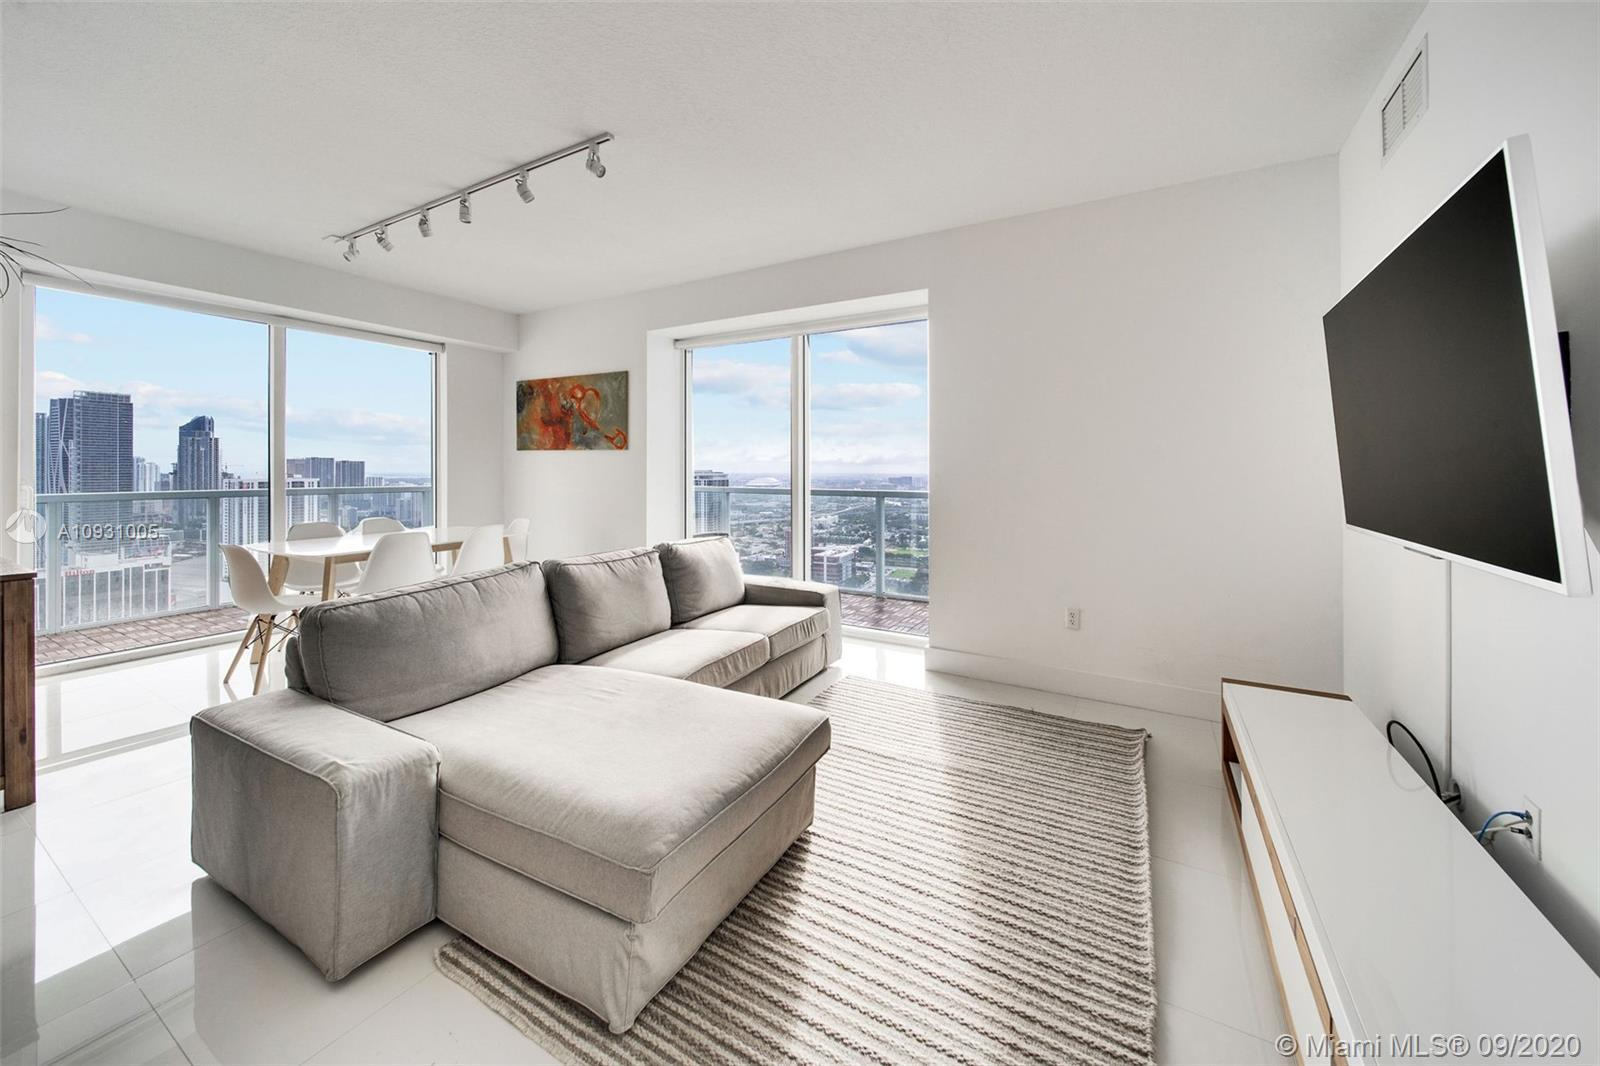 Soar above Miami in this 43rd floor, spacious corner unit w/ a large wraparound terrace & stunning v